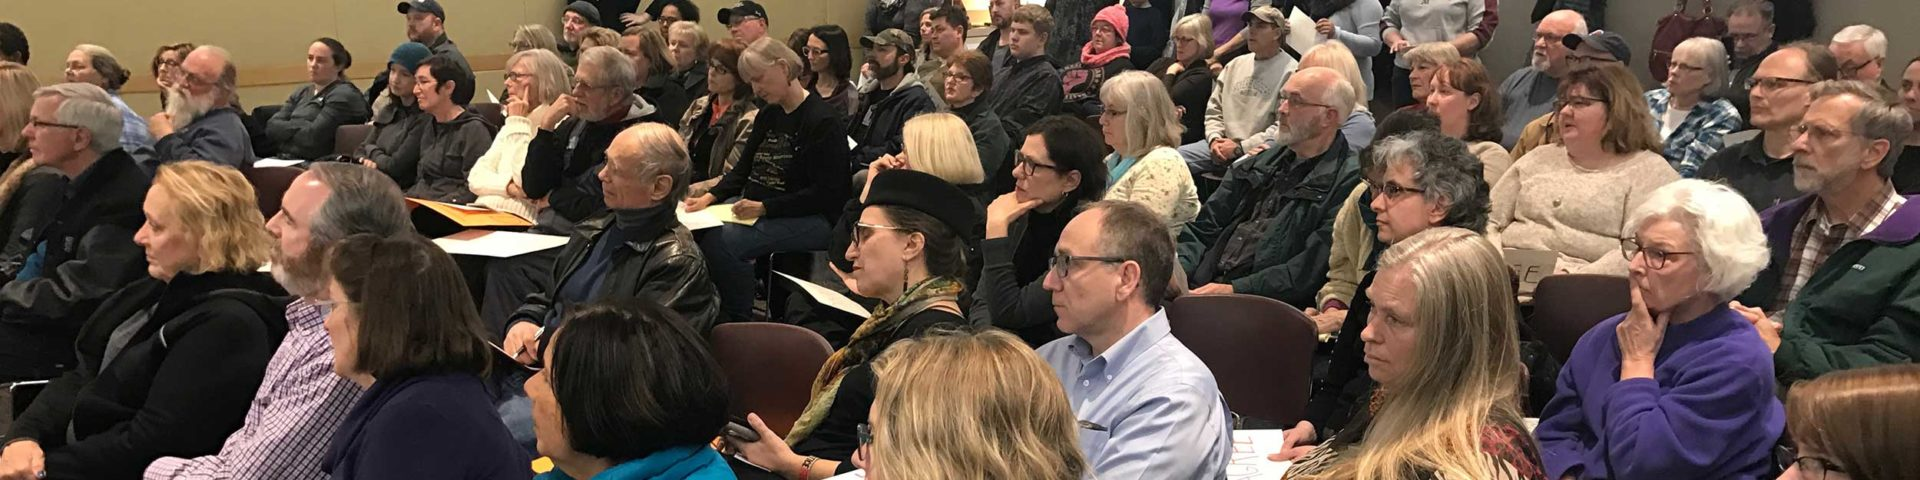 Eagan town hall without Jason Lewis